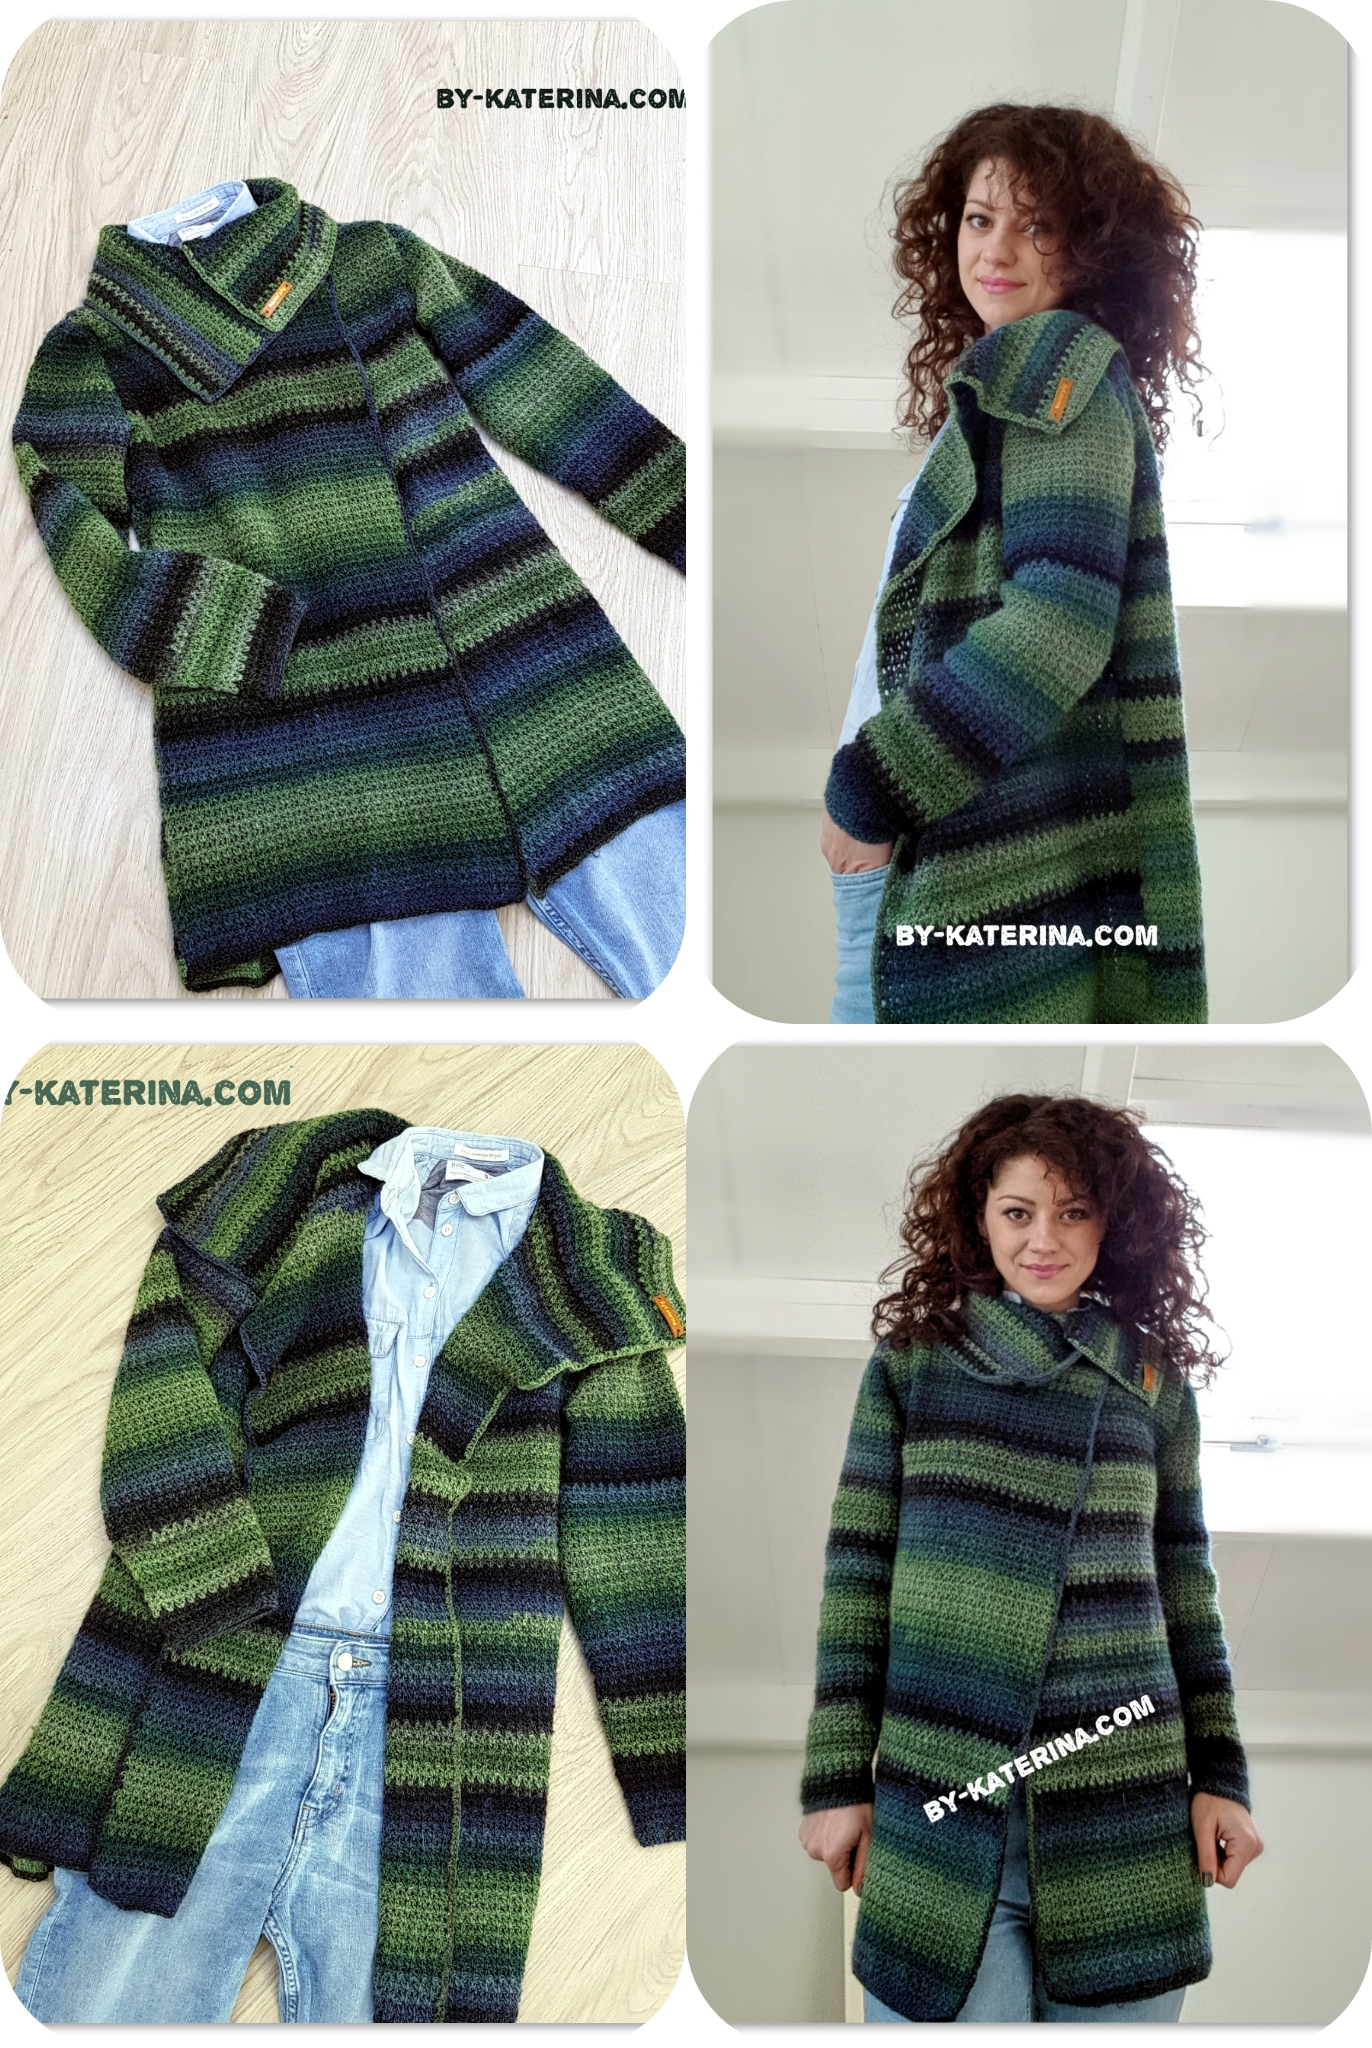 Easy To Wear Cardigan Free Crochet Pattern Bykaterina